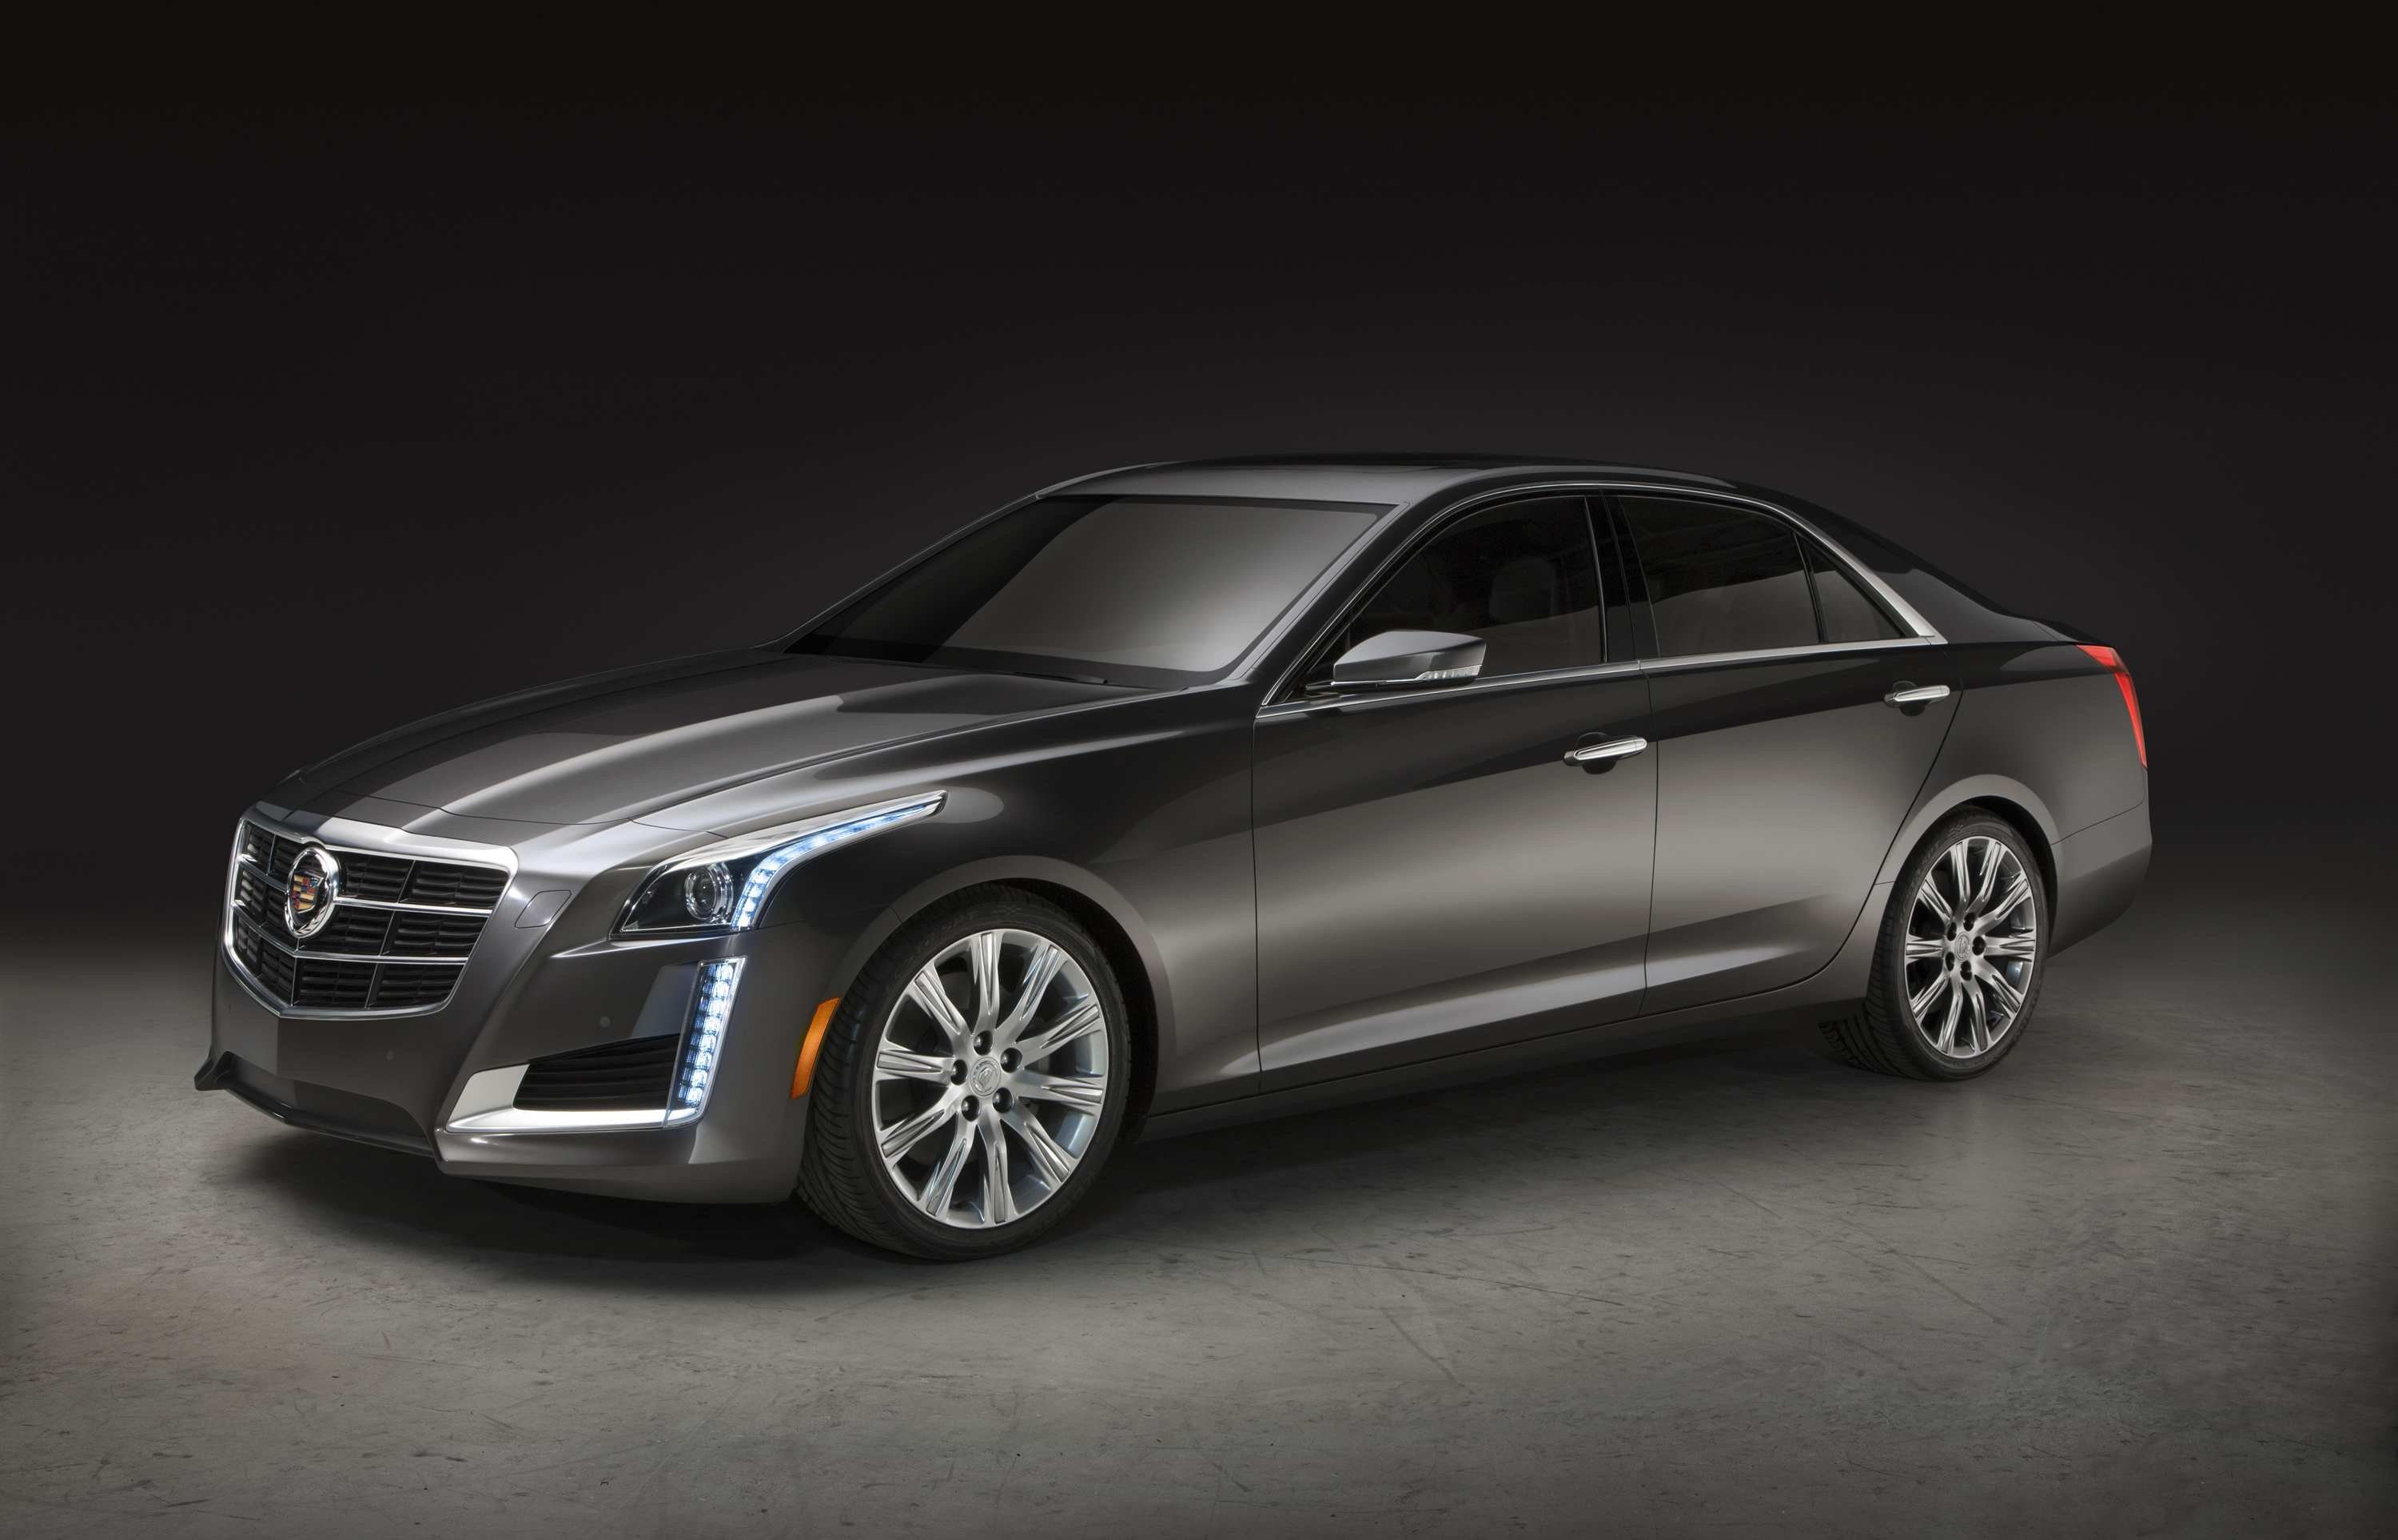 57 The Best Cadillac Sts 2020 Redesign